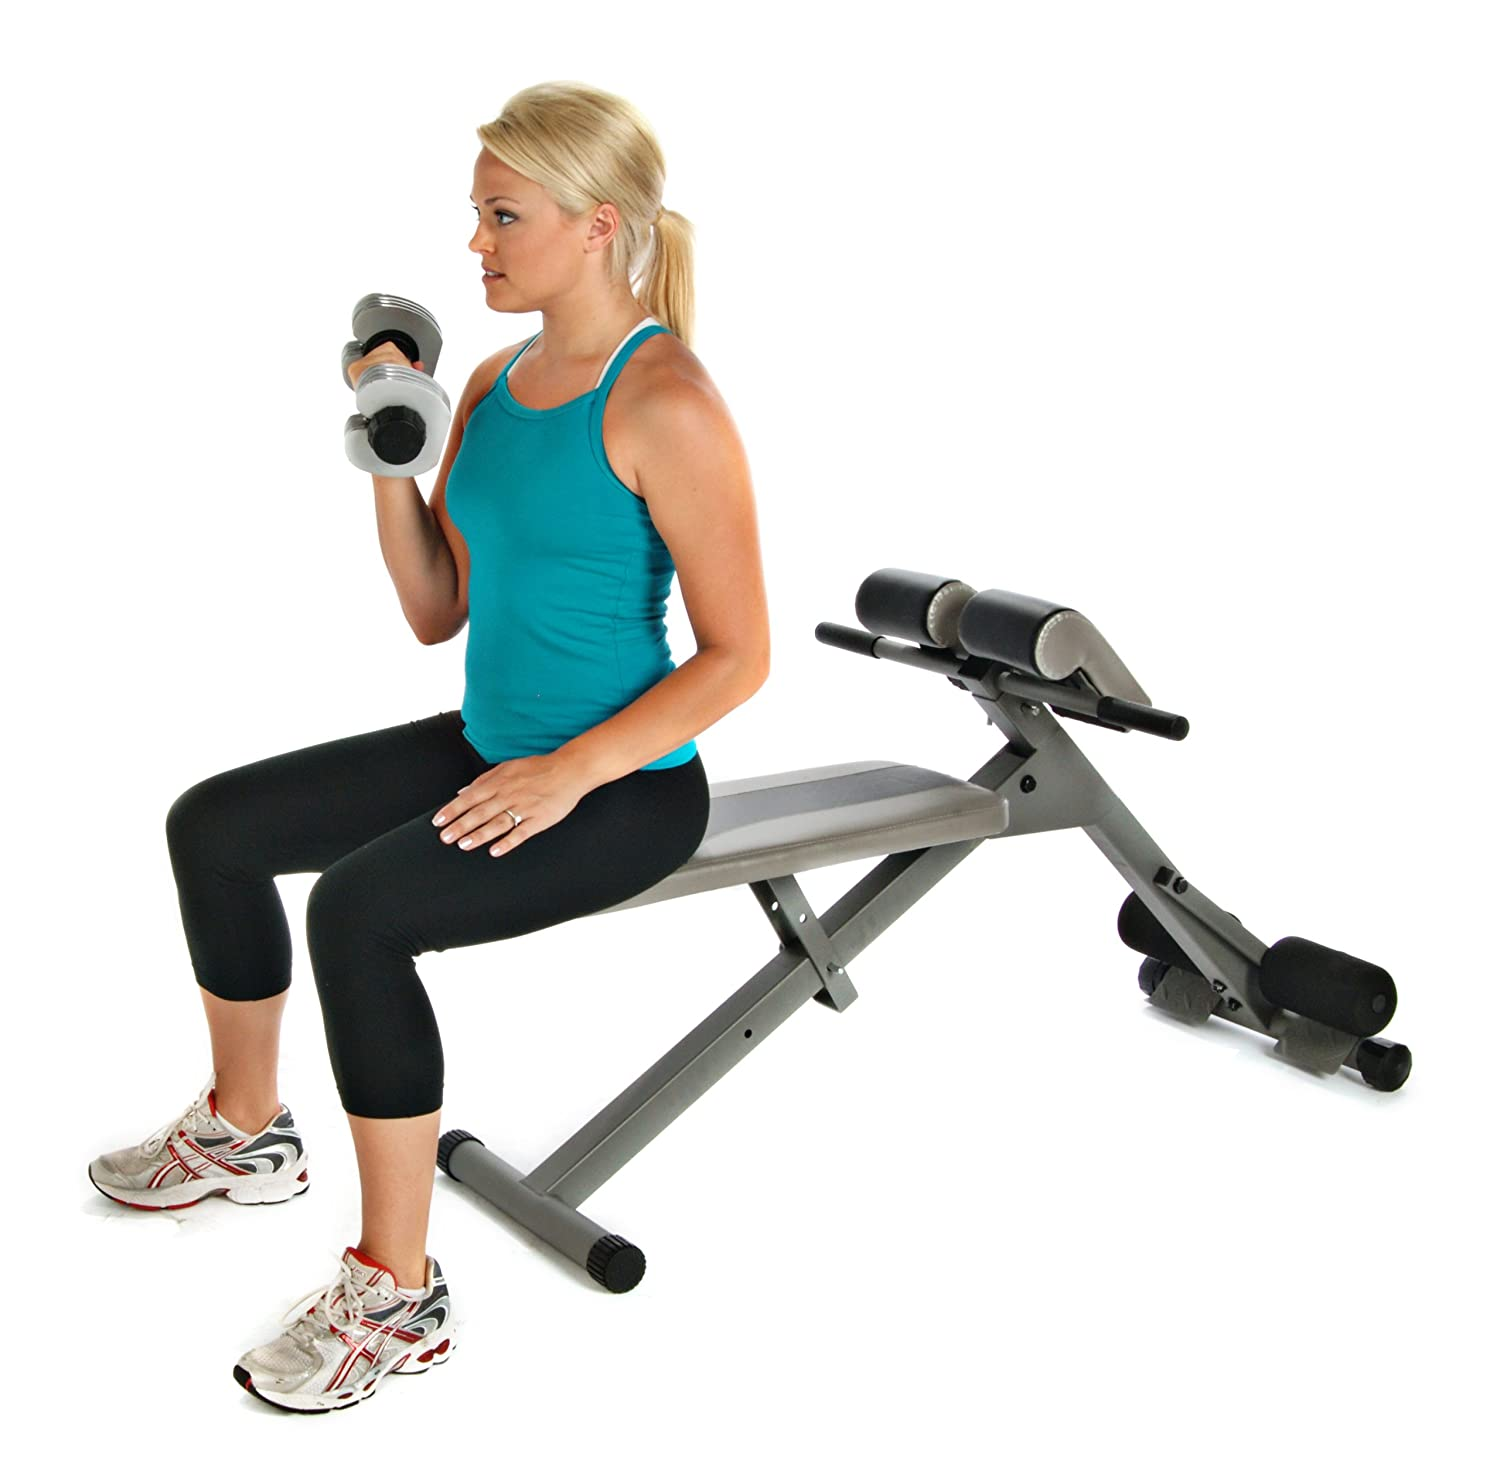 Best Hyperextension Bench & Roman Chair For Best Abs Exercise